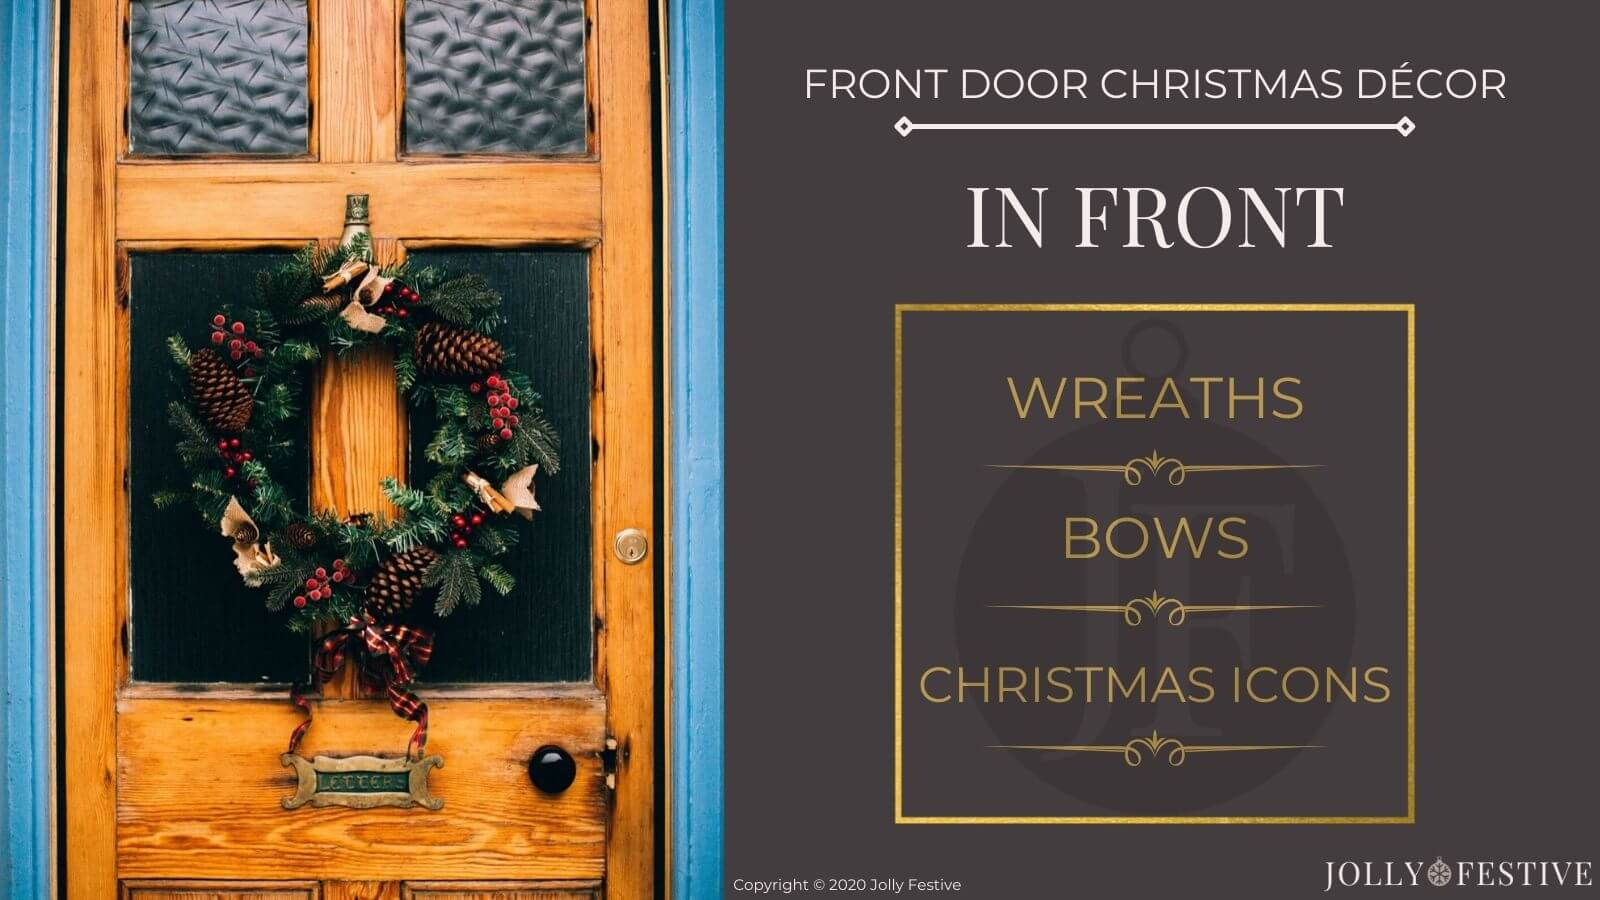 Front Door Christmas Décor - Ideas for In Front - wreaths, bows and Christmas icons